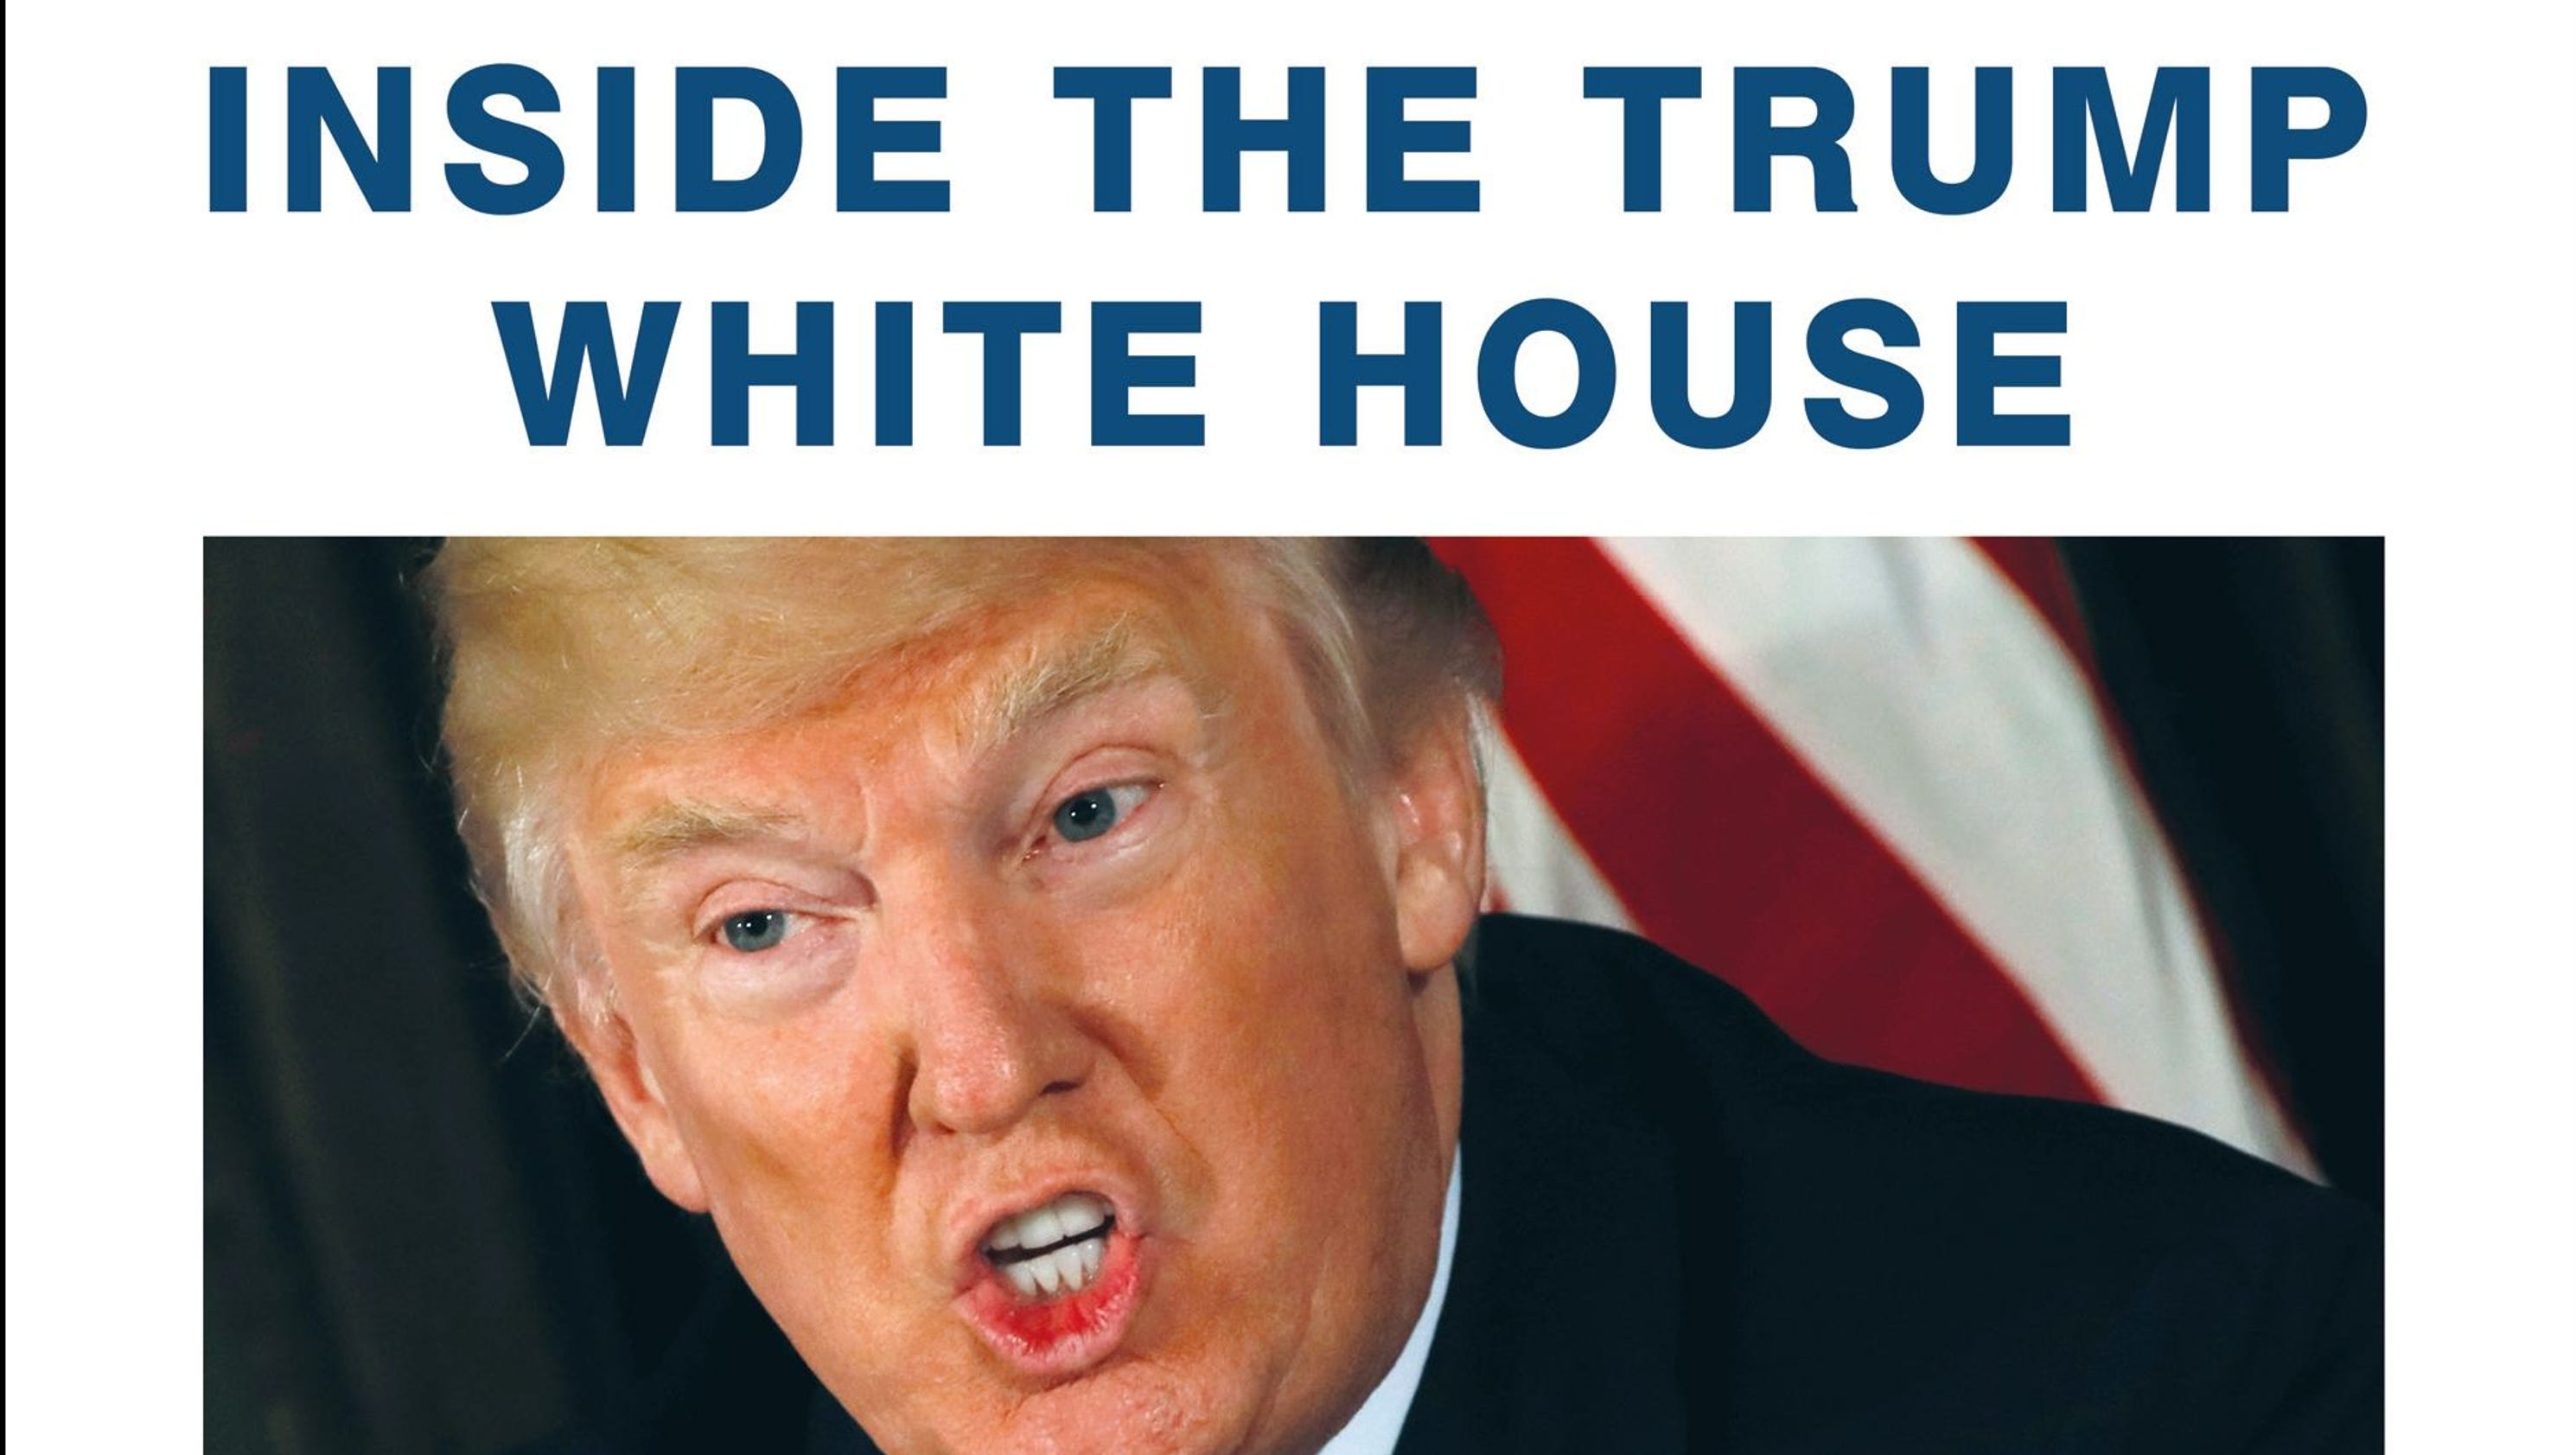 Dc5m United States Political In English Created At 2018 01 05 1430 Citizen Nh 8389 88l Happy Thursday Onpolitics Friends Case You Were Eagerly Awaiting The Release Of Michael Wolffs Book About Trump White House Fear Not His